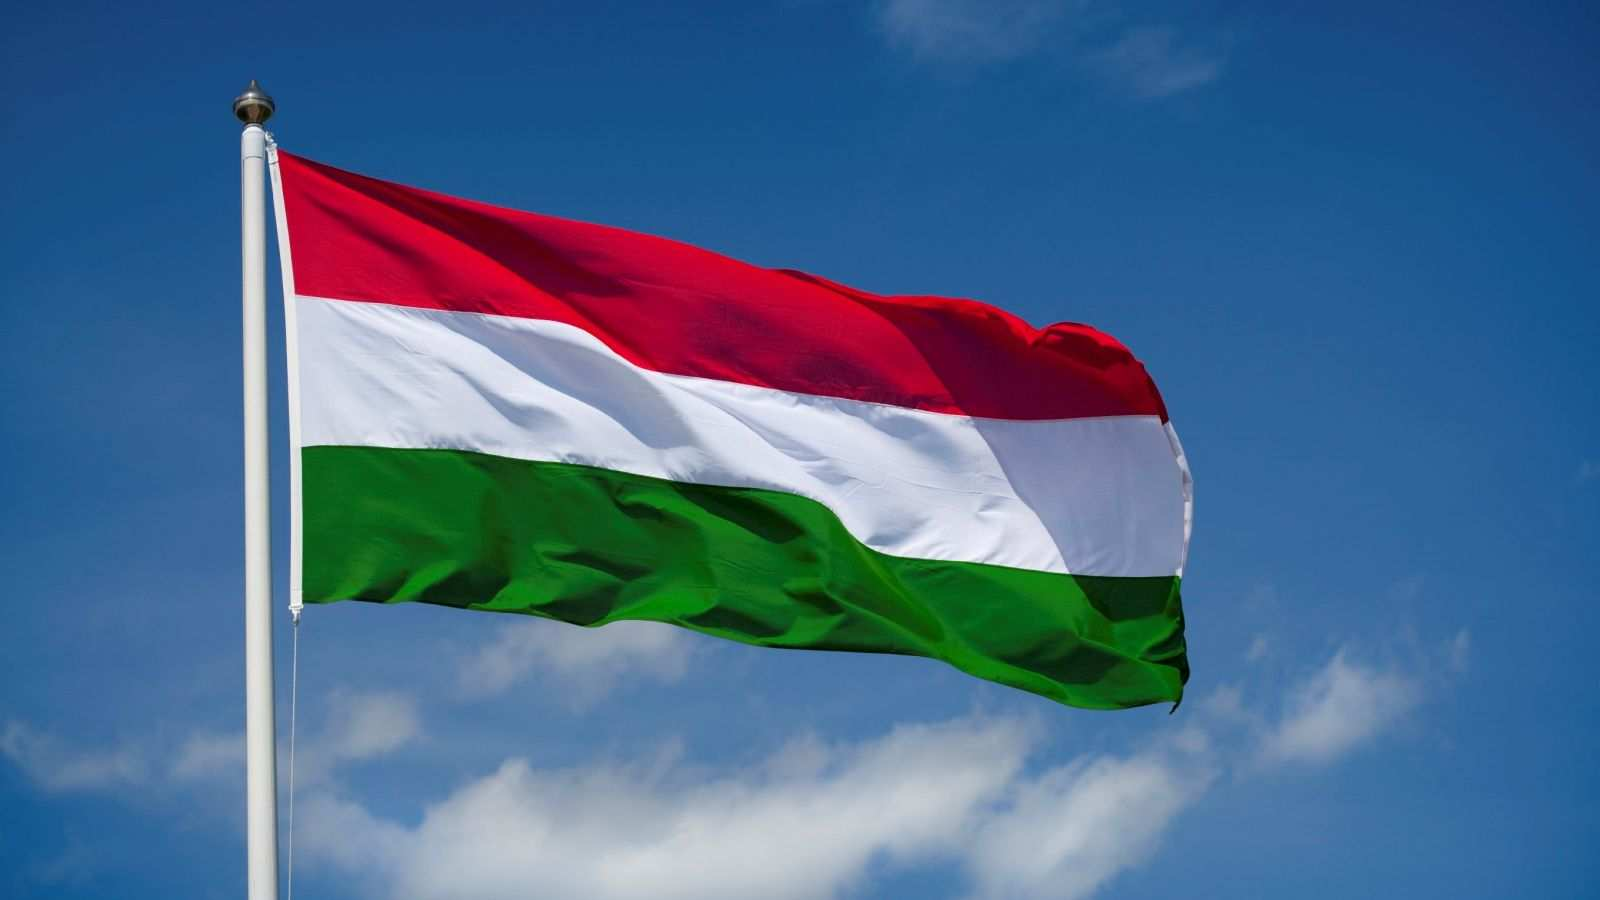 Volume of Exports of Hungary 1.3% Down during Jan-Dec 2020